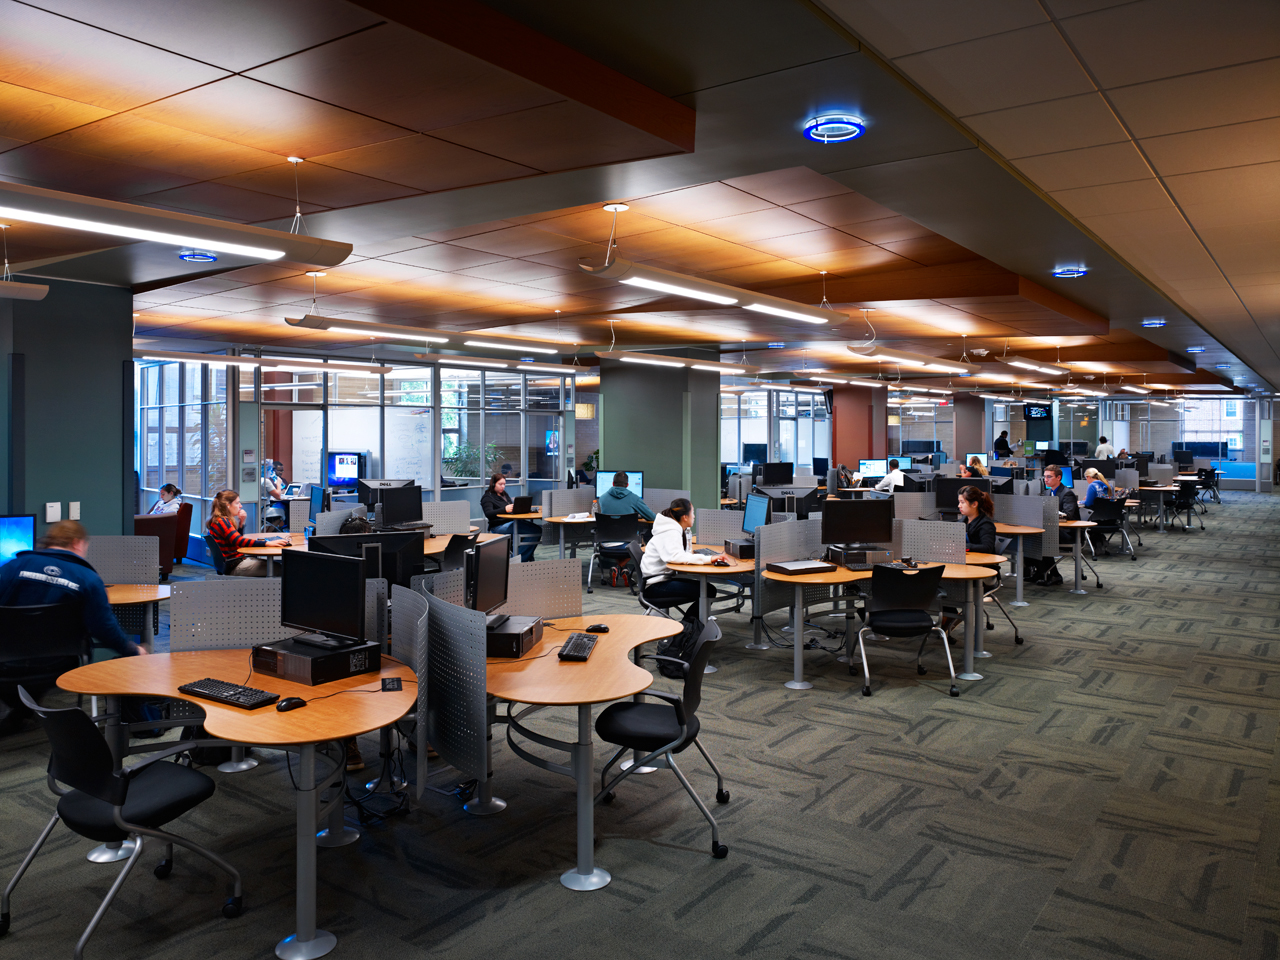 The Pennsylvania State University Knowledge Commons